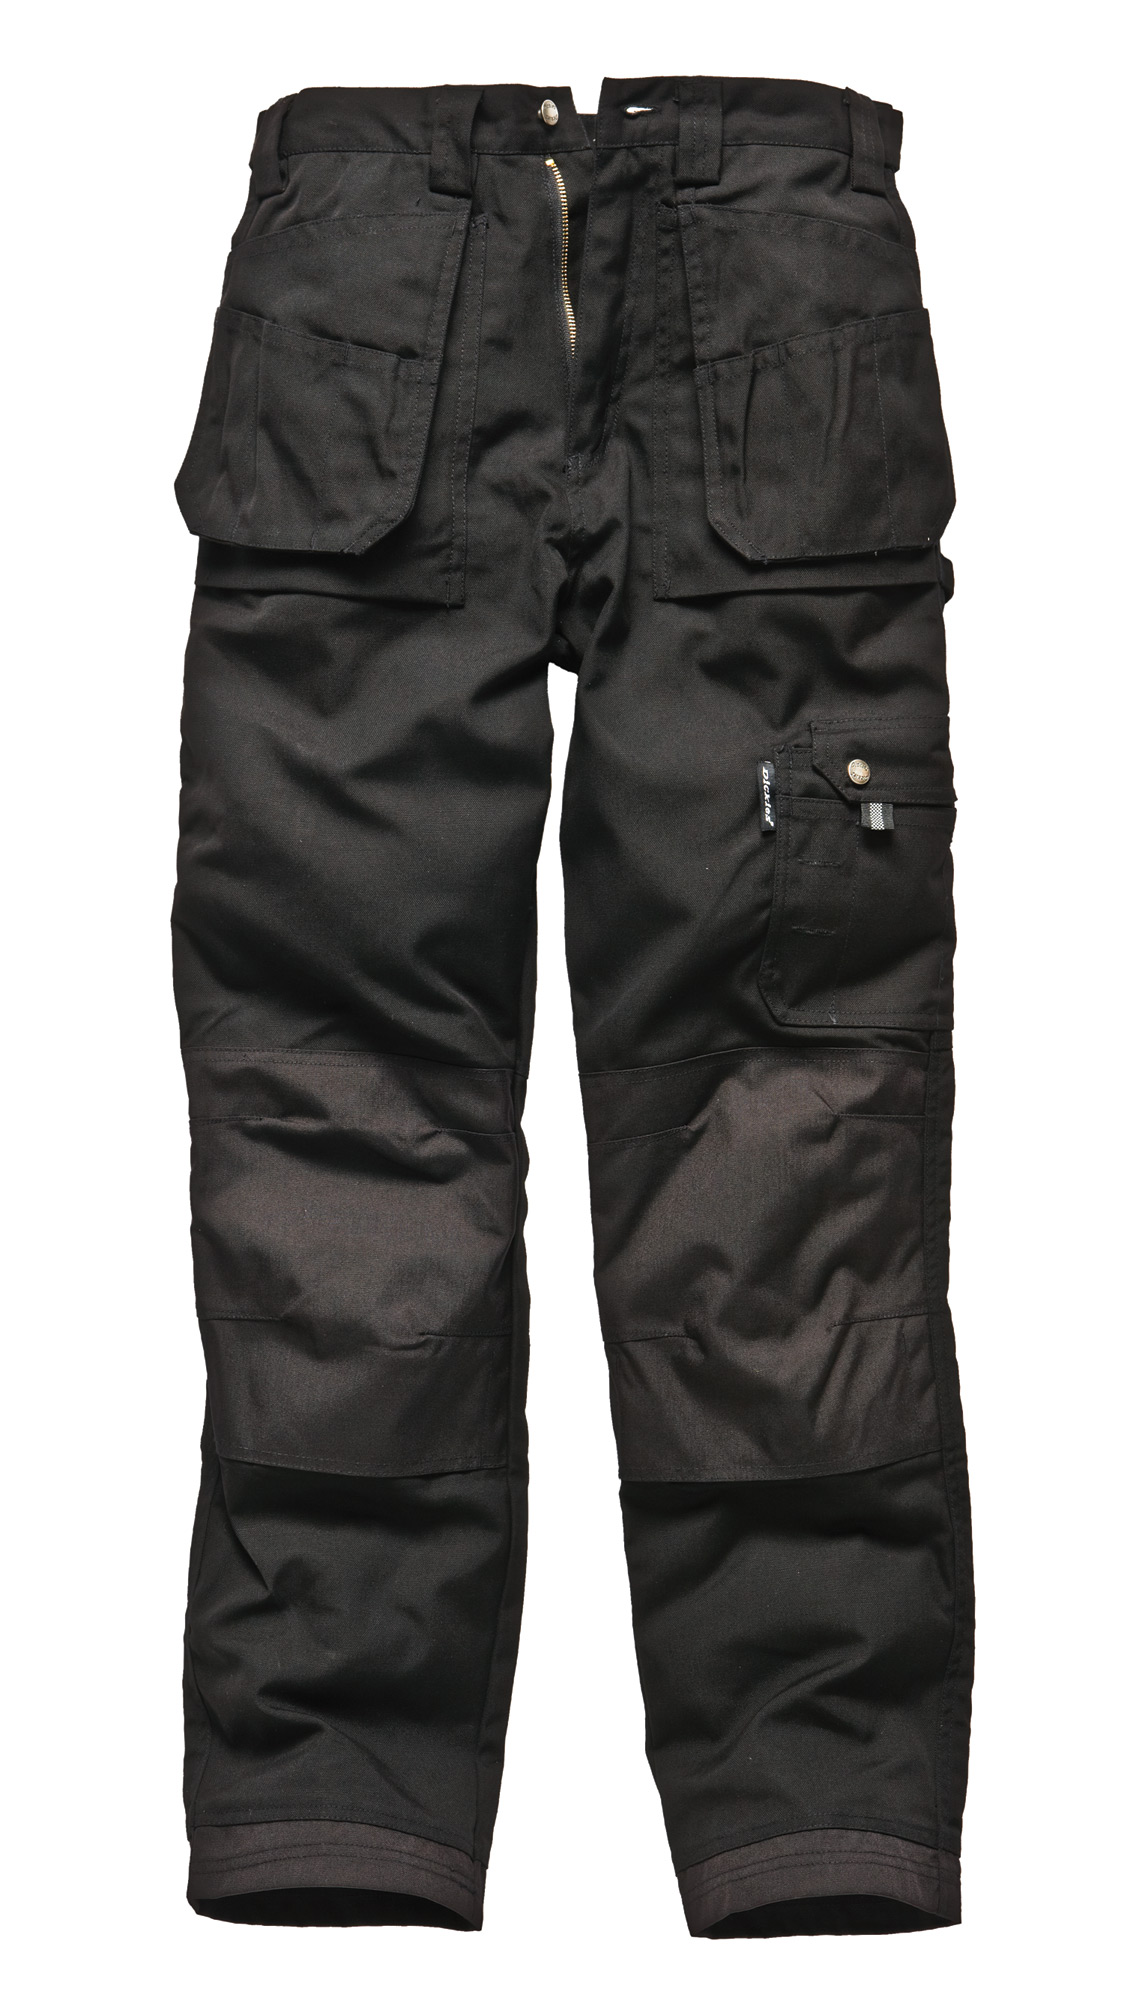 Navy///Dickies Eisenhower Trousers Black/Navy | The Safety Shack: http://www.safetyshack.co.uk/100465-dickies-eisenhower-trousers-.html